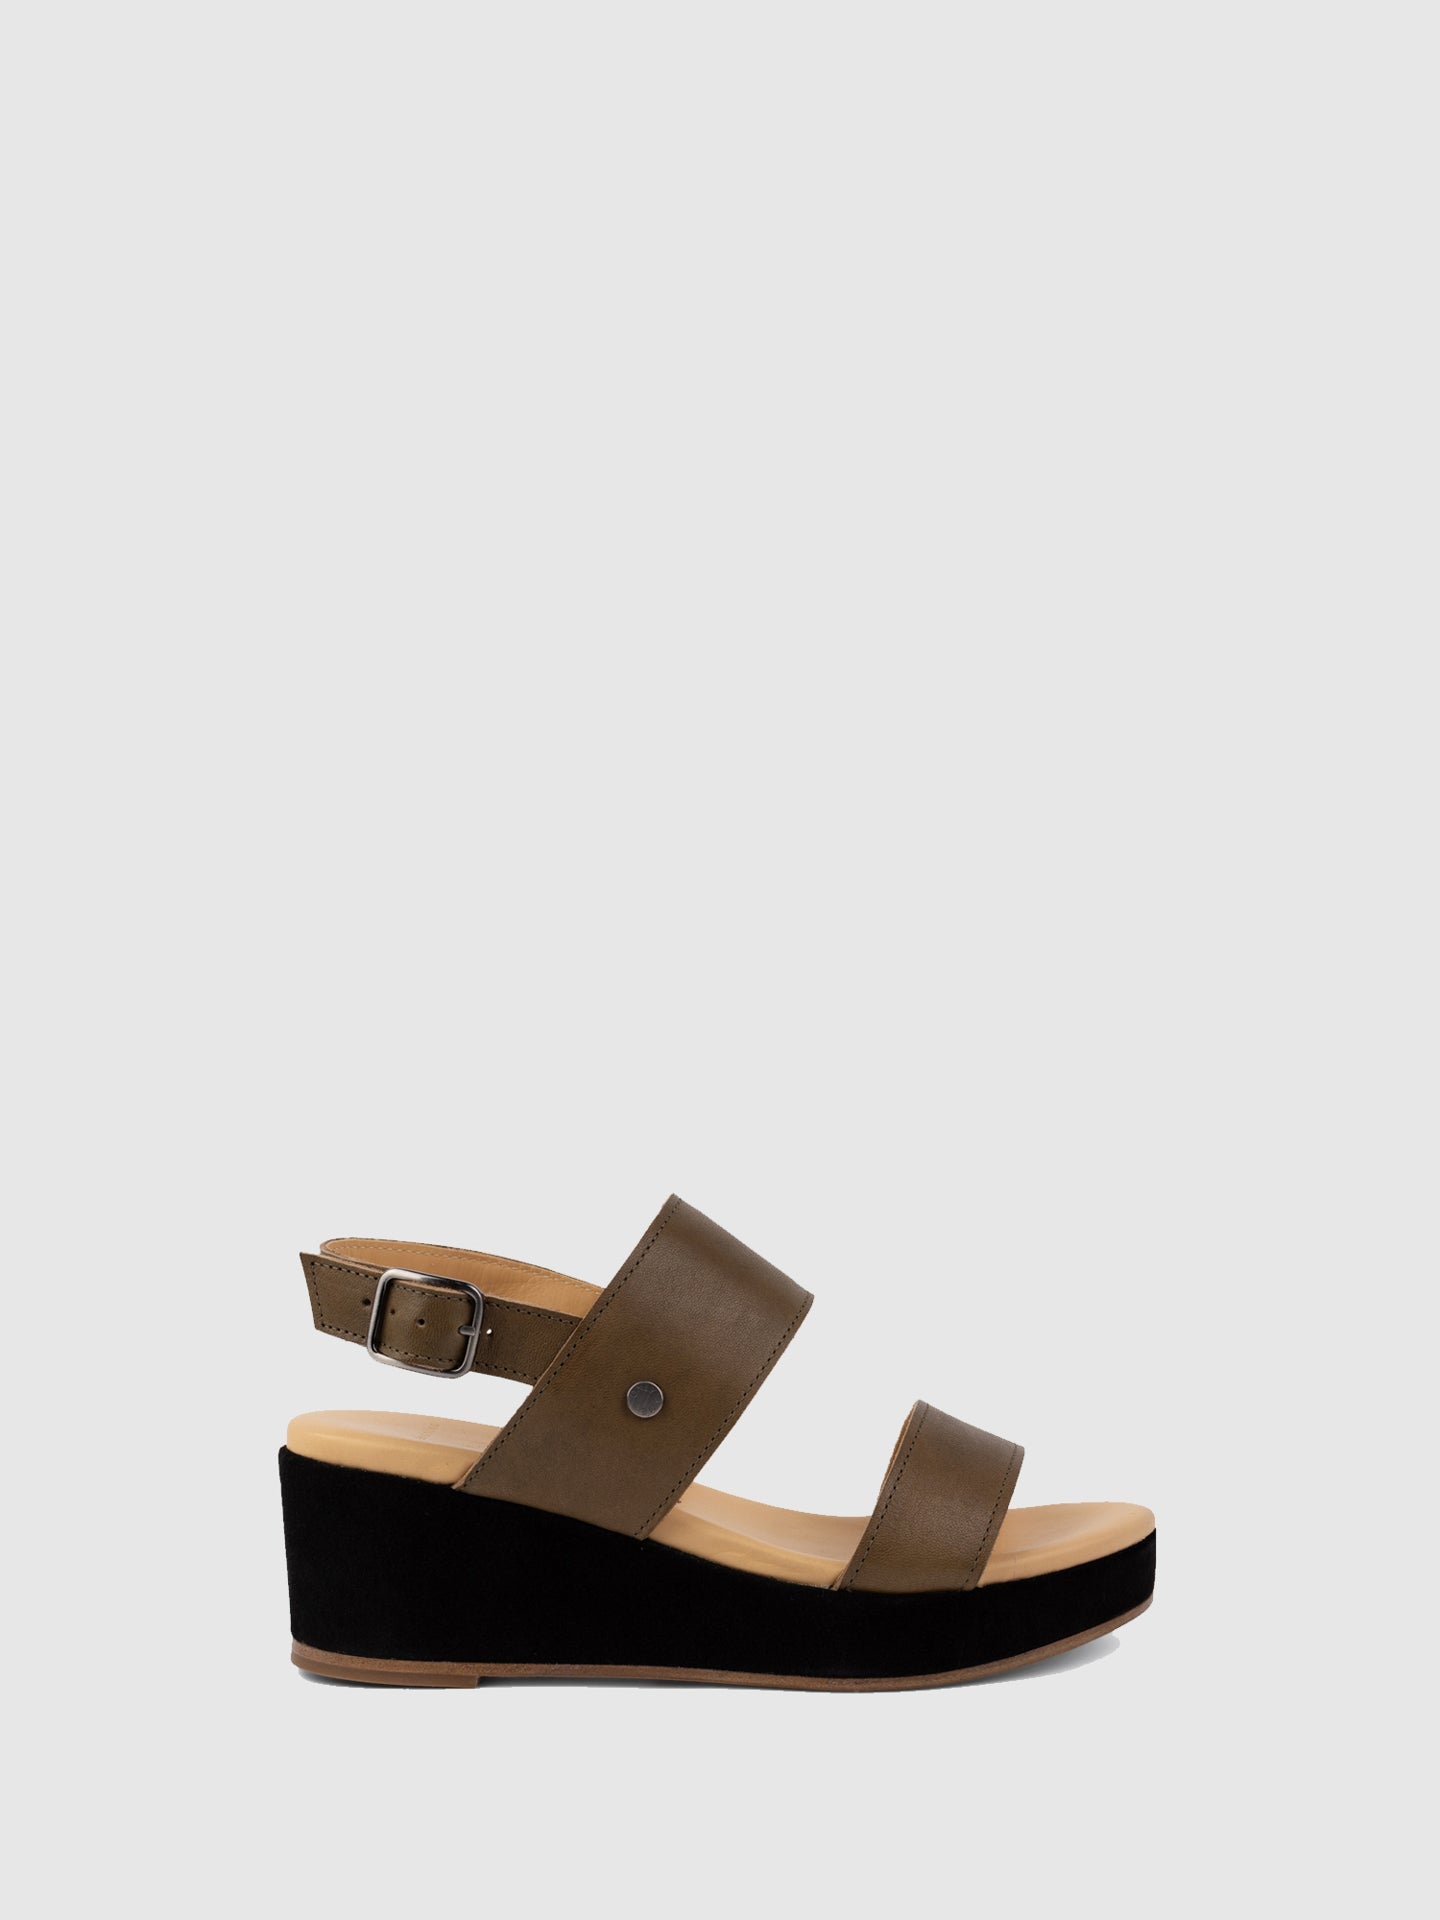 Only2me SandyBrown Wedge Sandals